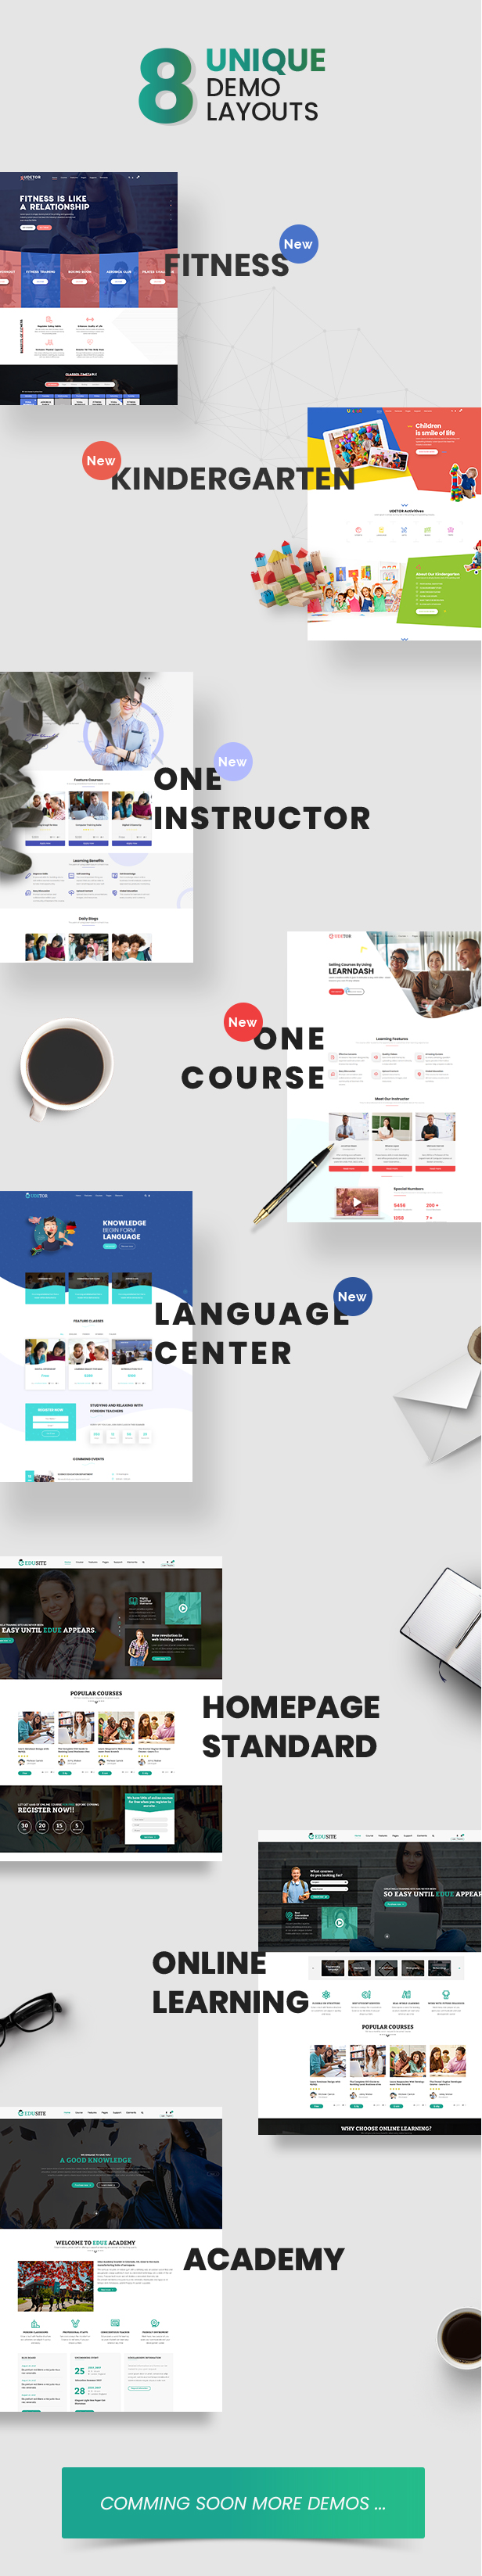 Udetor - LMS Education WordPress Theme - 8